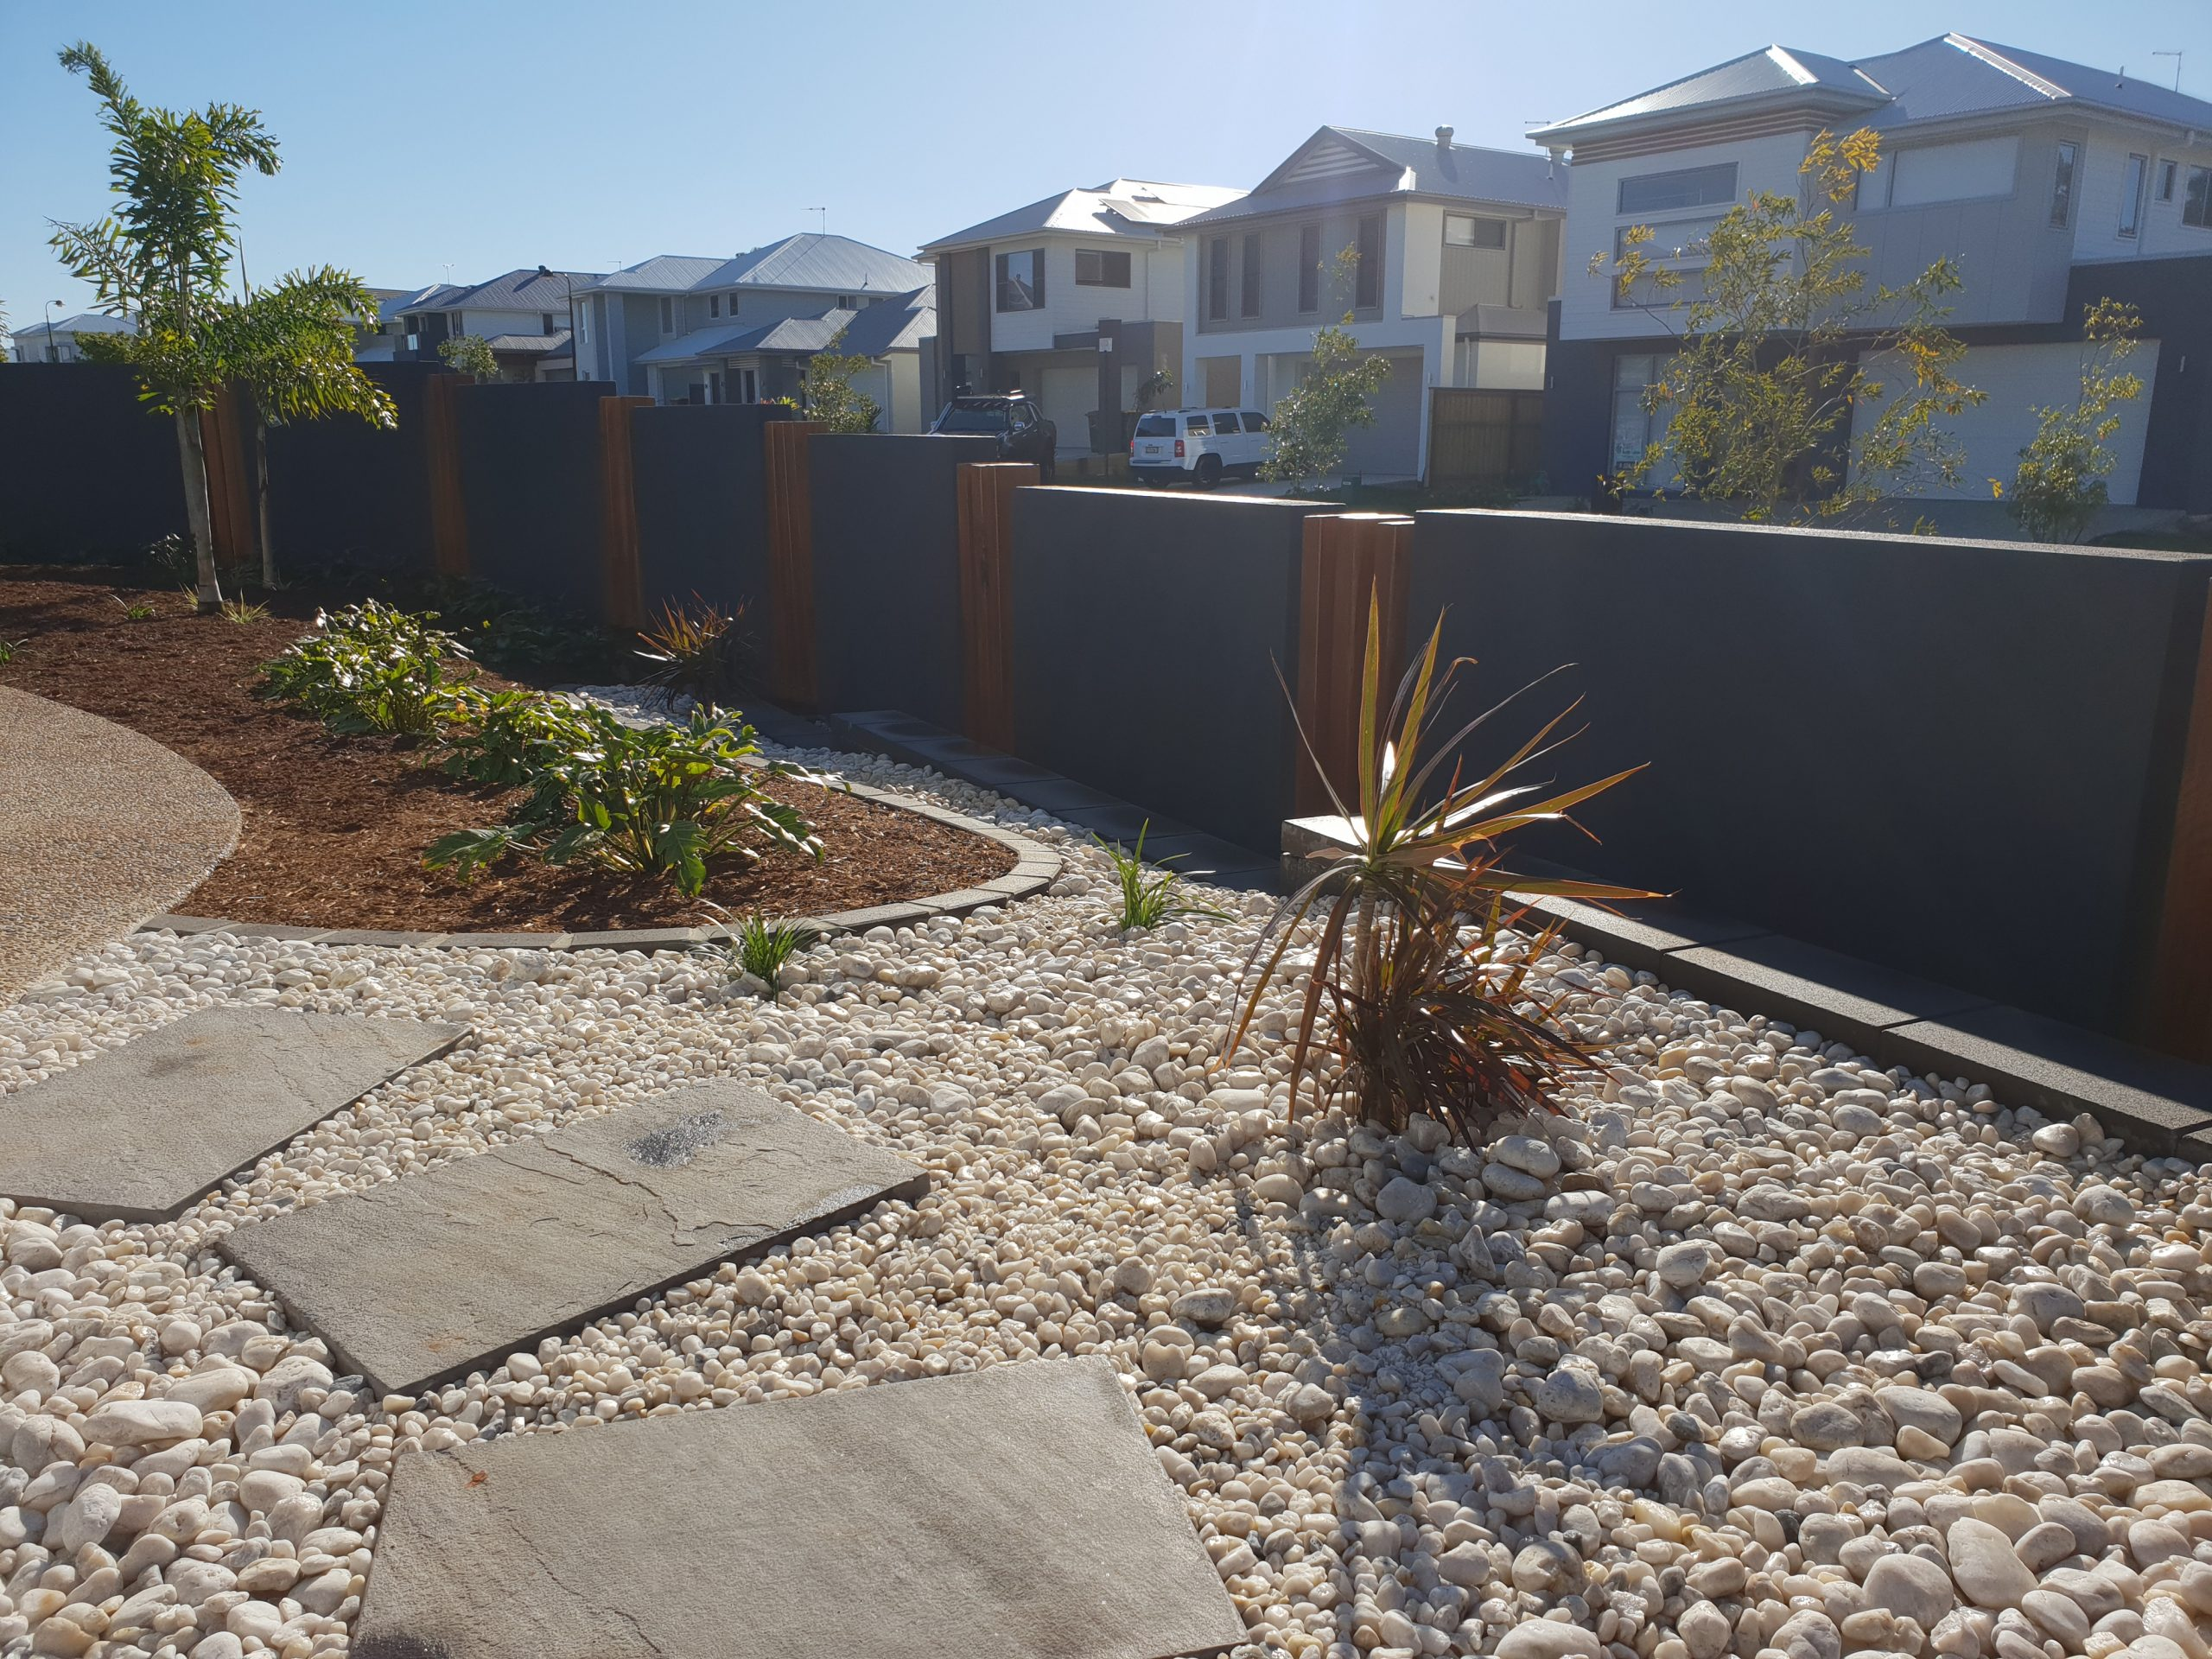 Custom fencing, rock garden with stepping stones, and featured plants